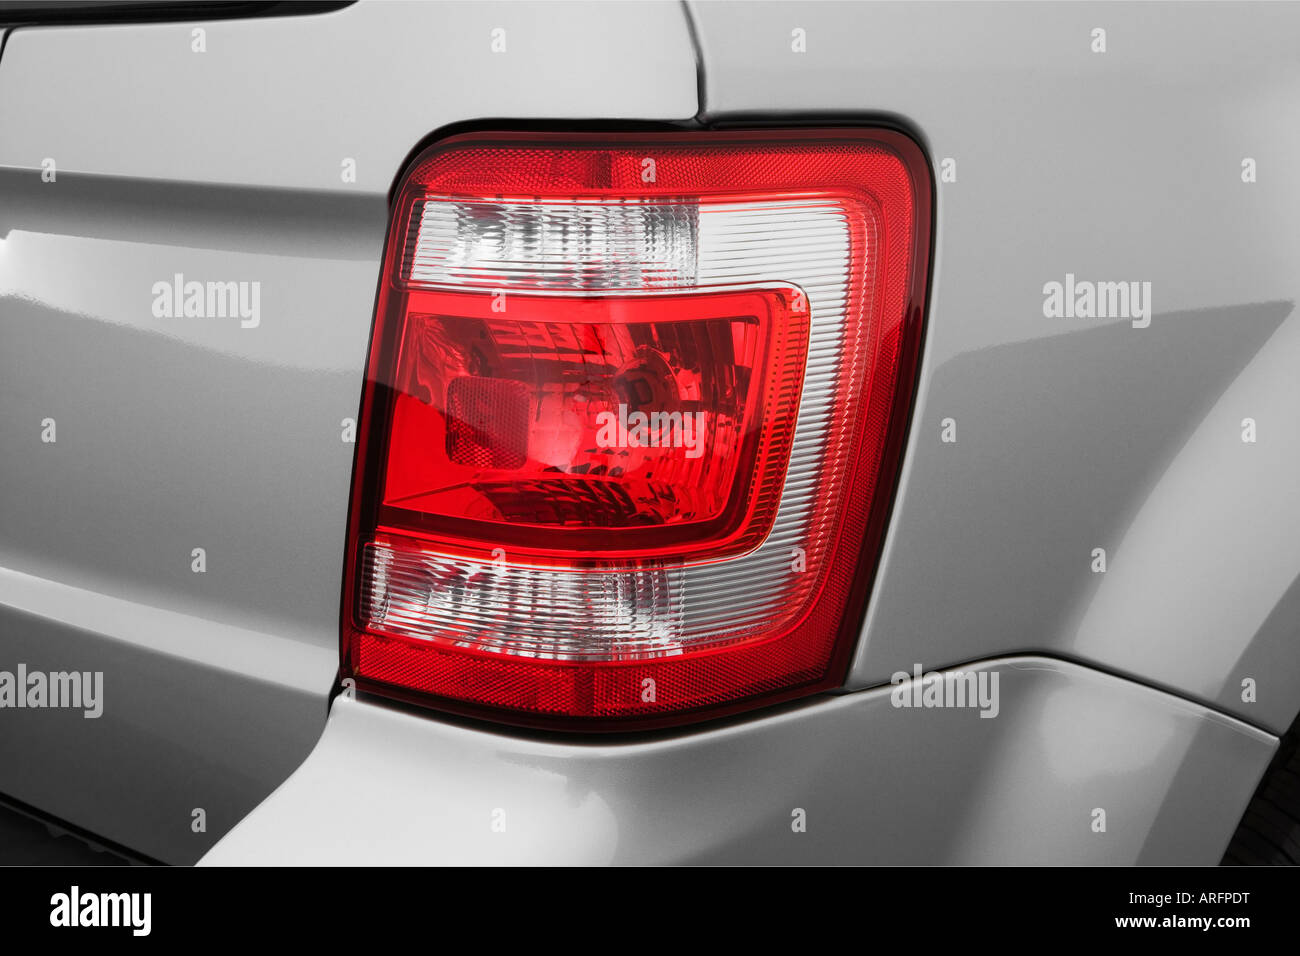 2008 ford escape xlt in silver tail light stock photo. Black Bedroom Furniture Sets. Home Design Ideas